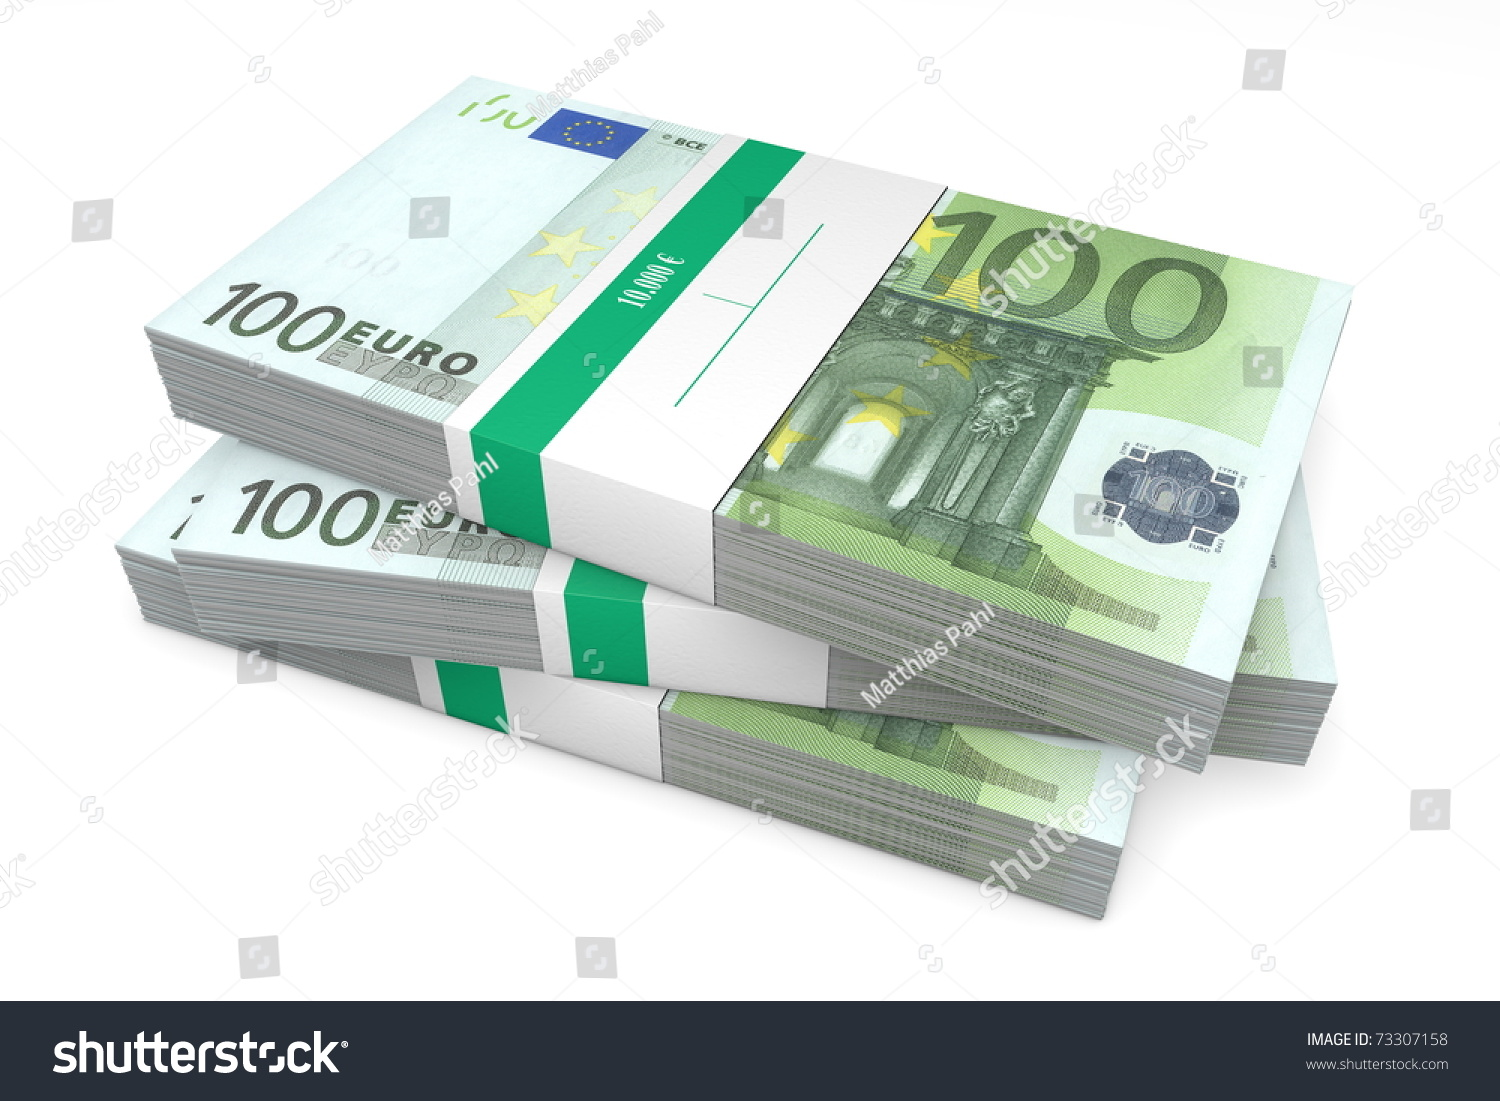 Three Packet 200 Euro Notes Bank stockillustration 73307158